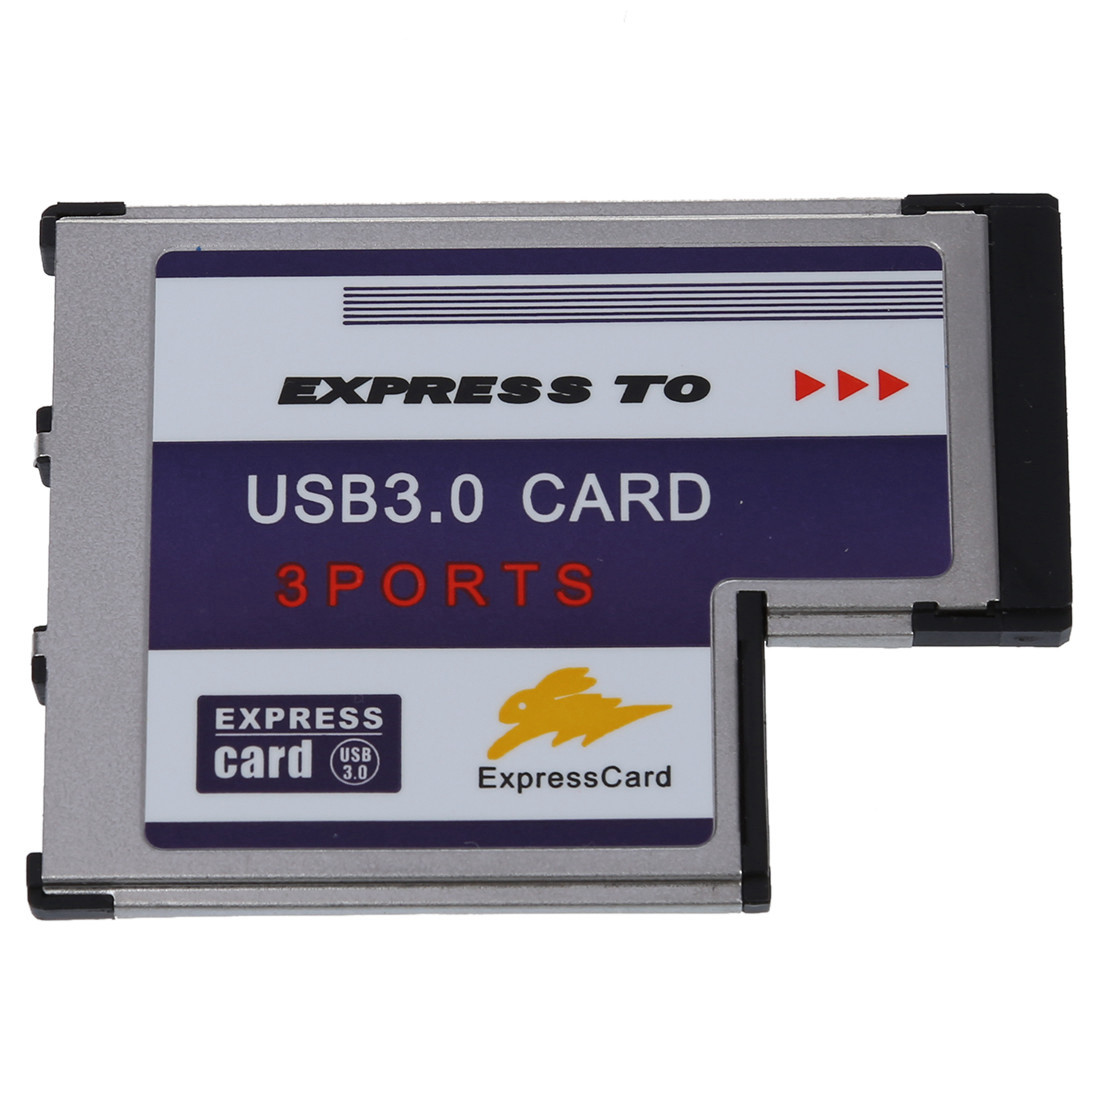 3 Port USB 3.0 Express Card 54mm PCMCIA Express Card for Laptop NEW(China)